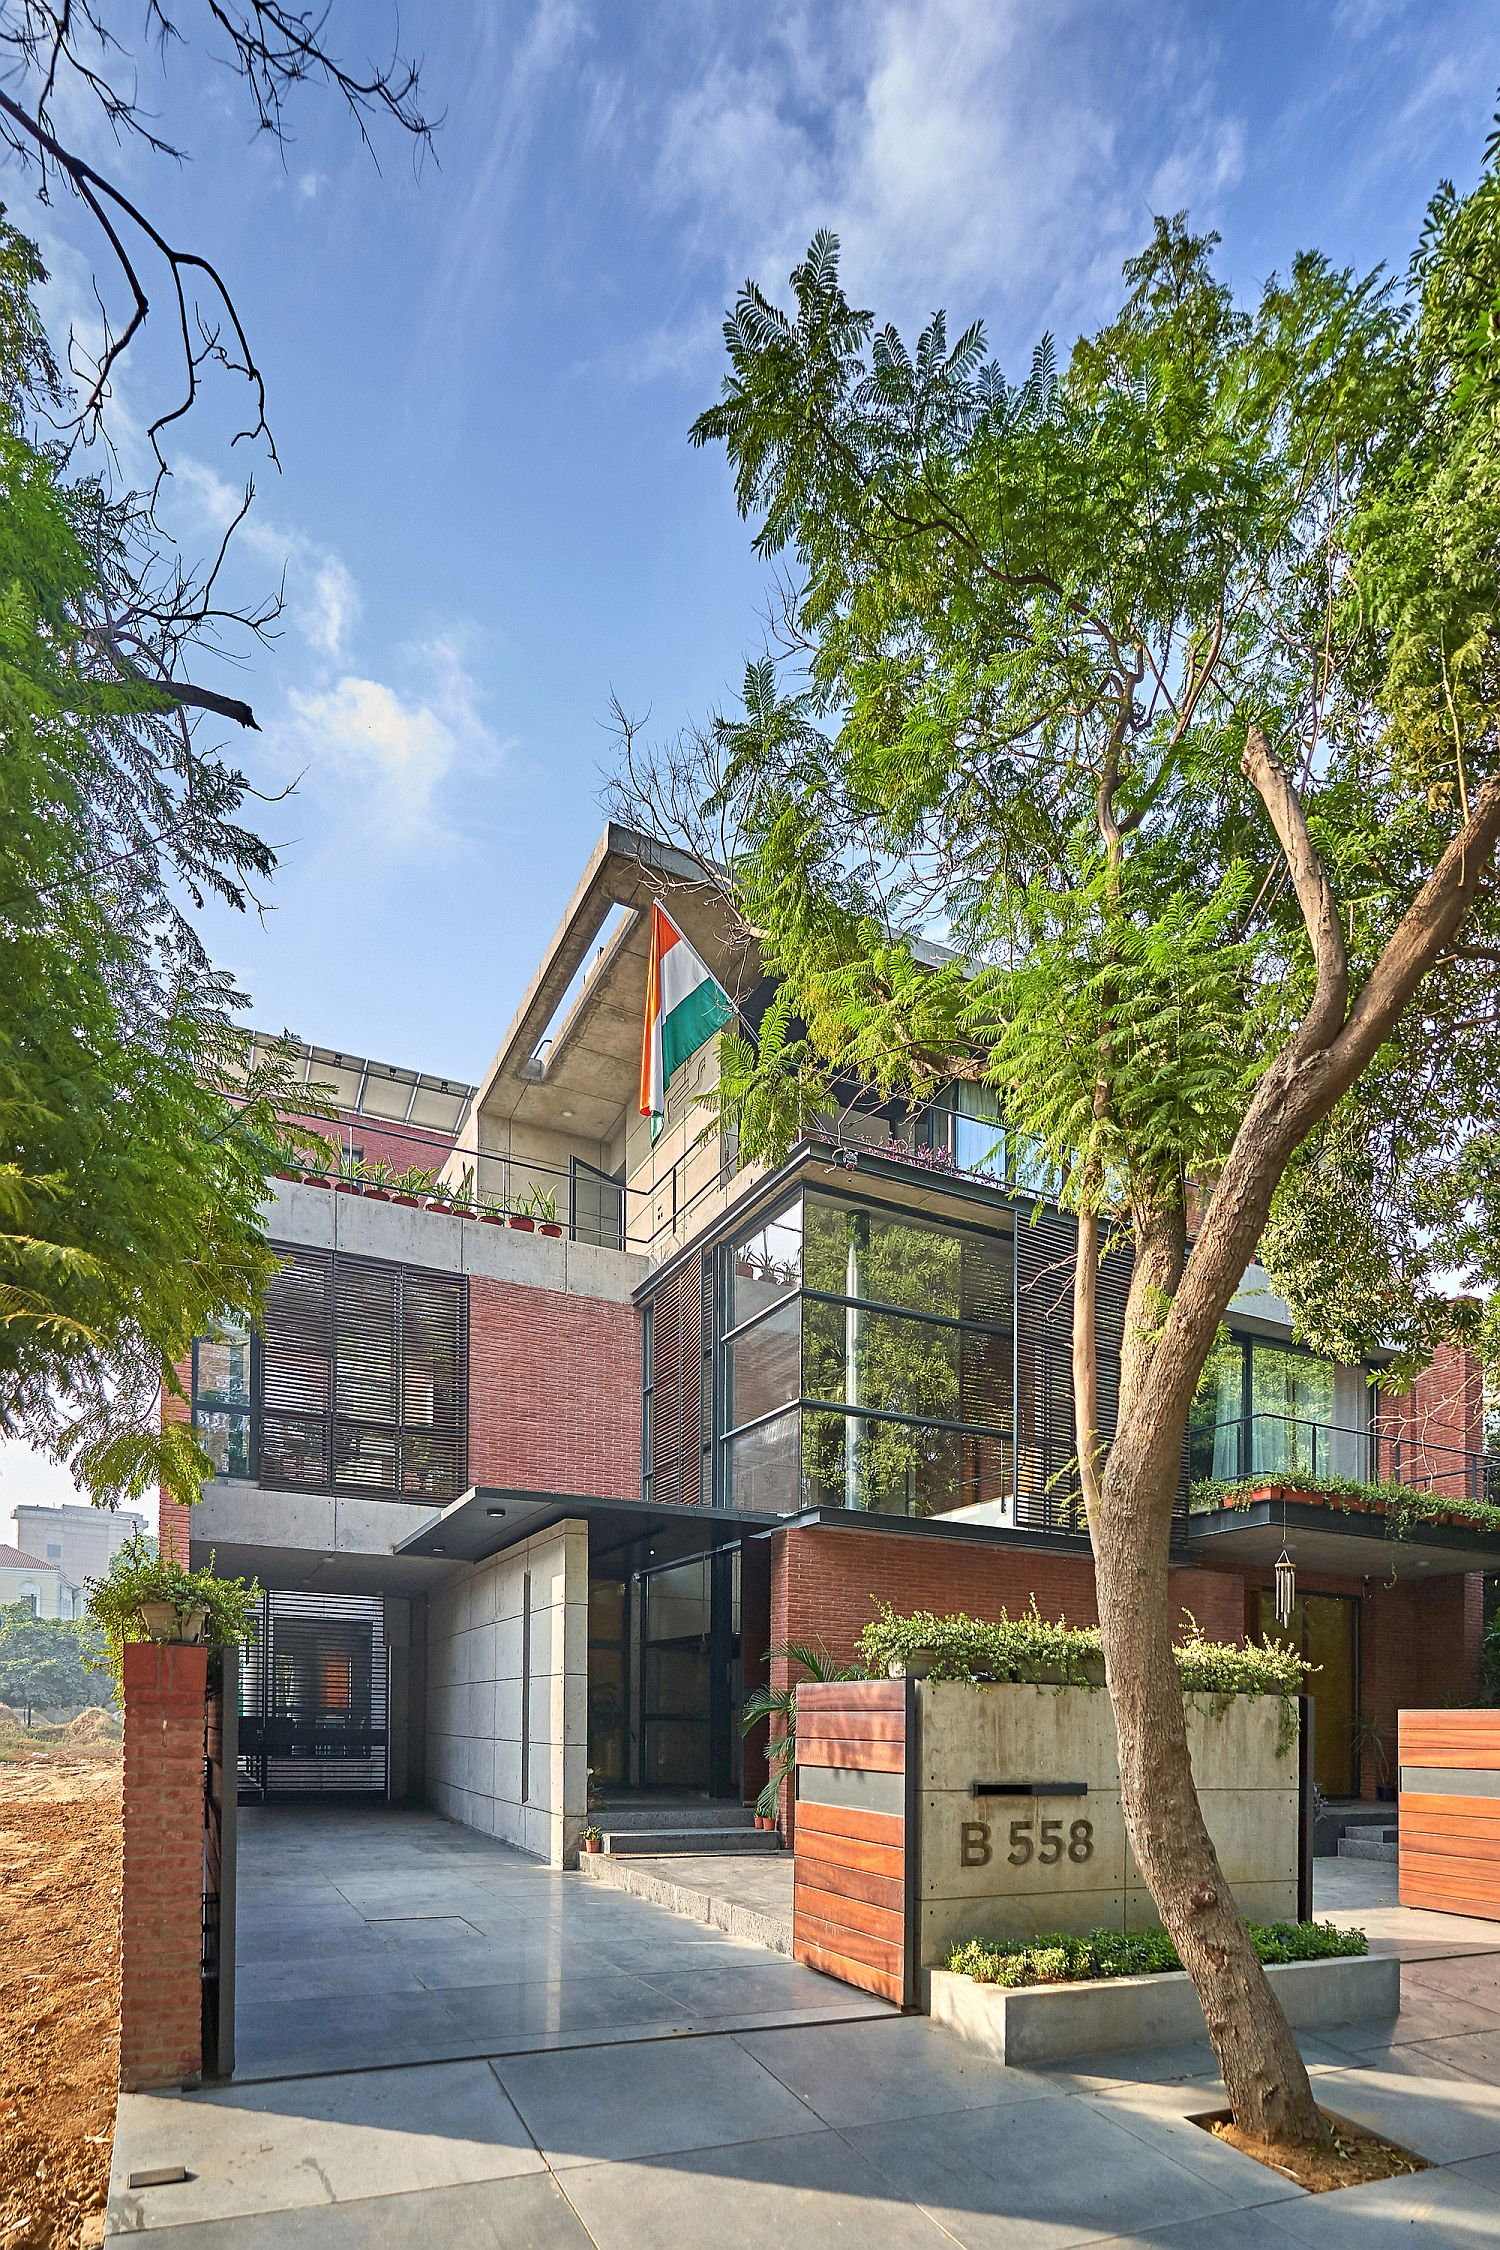 Concrete, brick and glass shape the beautiful and modern studio space and house in India